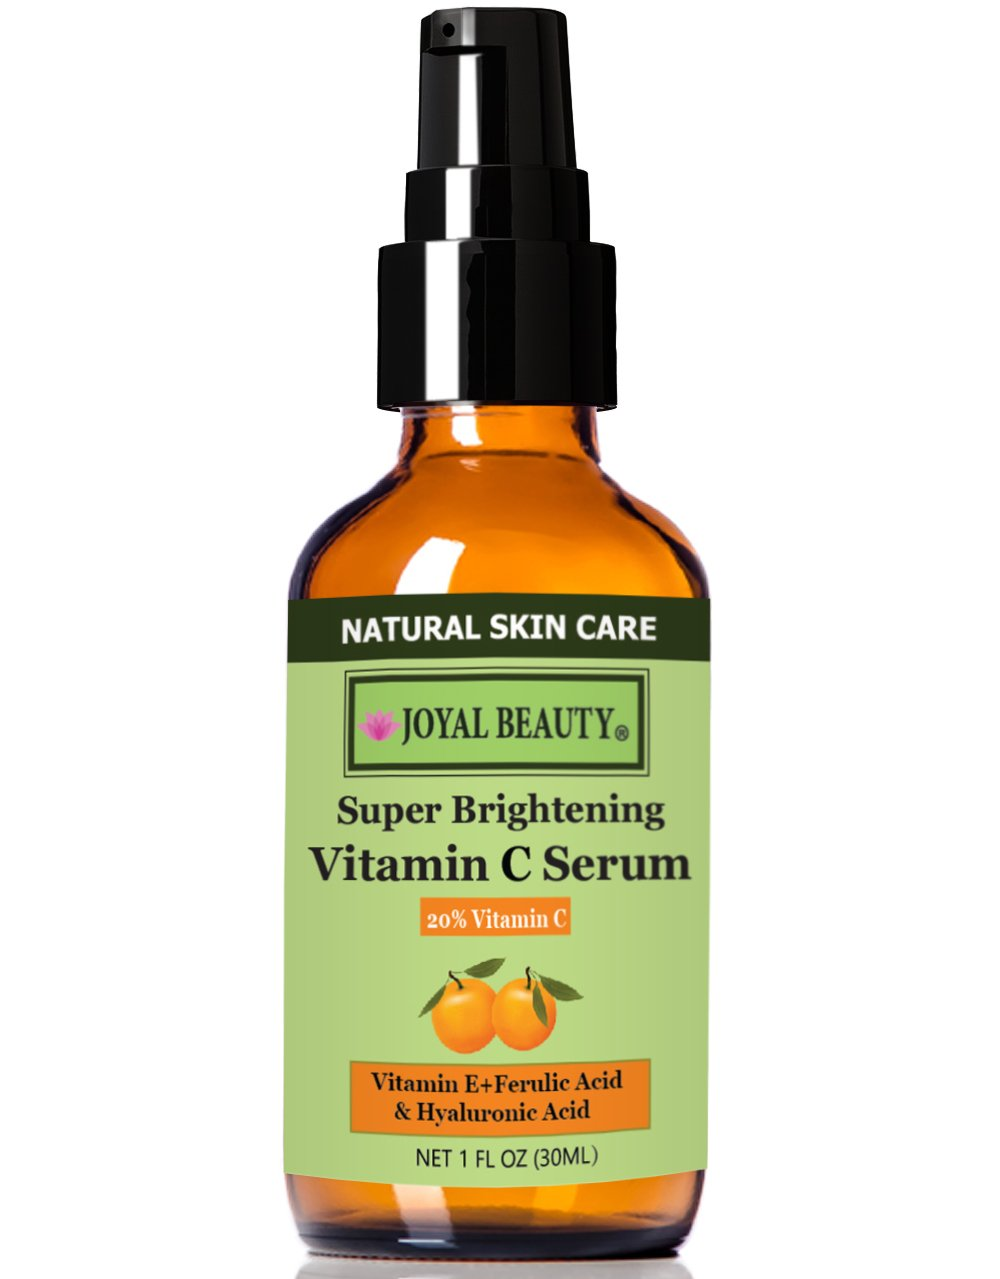 Best Organic Vitamin C Serum 20% for Face by Joyal Beauty. #1 Premium Vitamin C E Ferulic Combination Antioxidant Treatment. Best For Anti-aging/Repairing Sun Damage/Firming/Anti-acne/Skin Whitening.